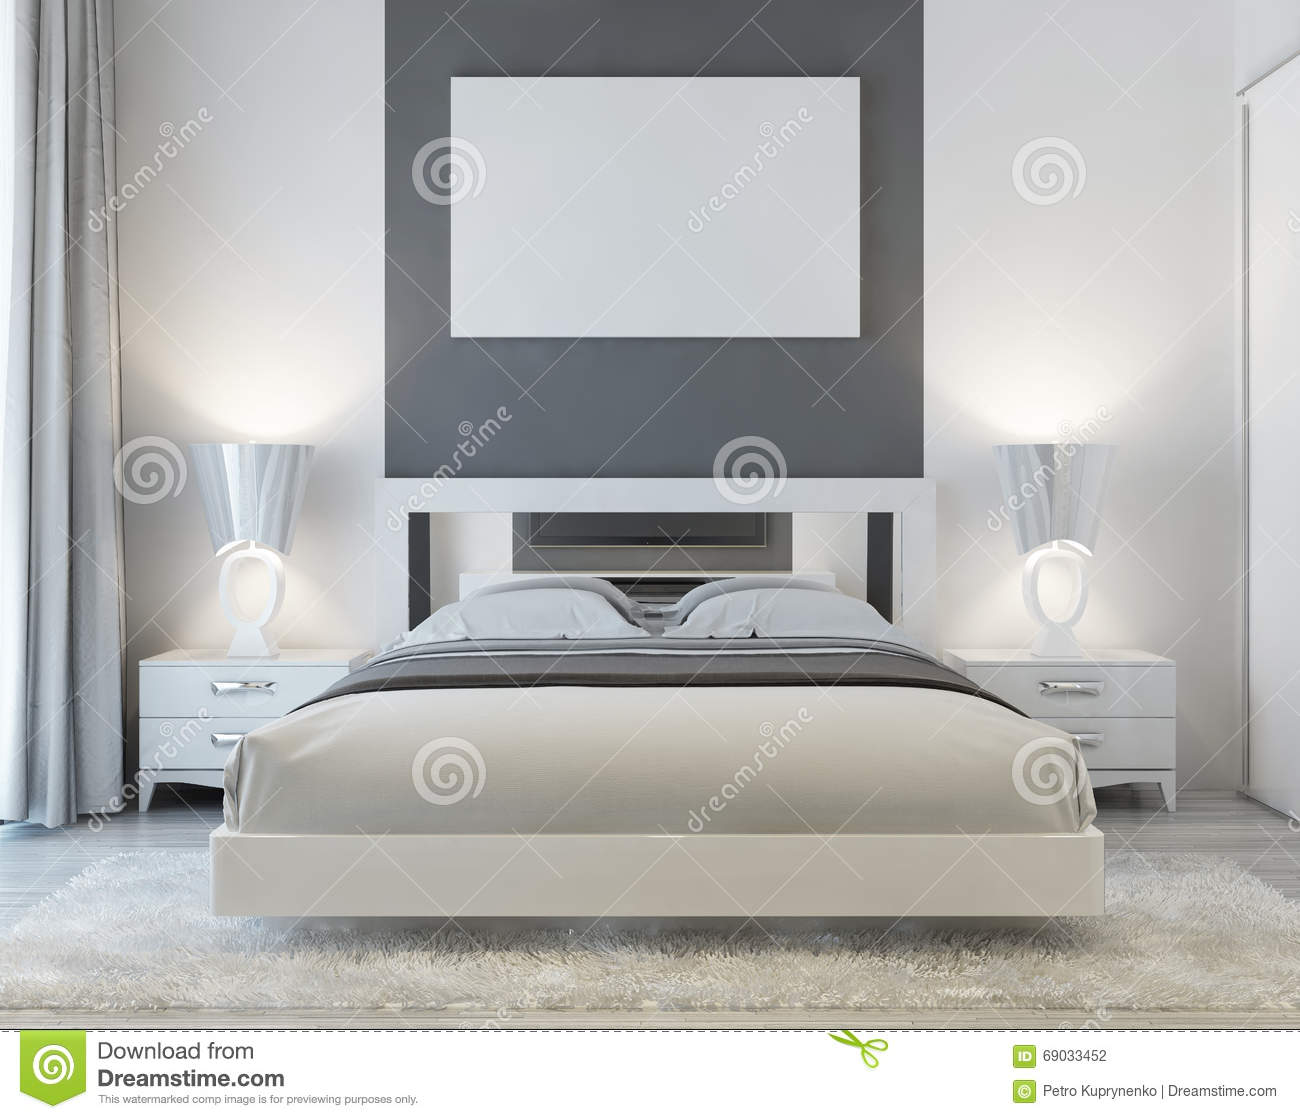 Front View Of Art Deco Bedroom. Stock Illustration - Image: 69033452